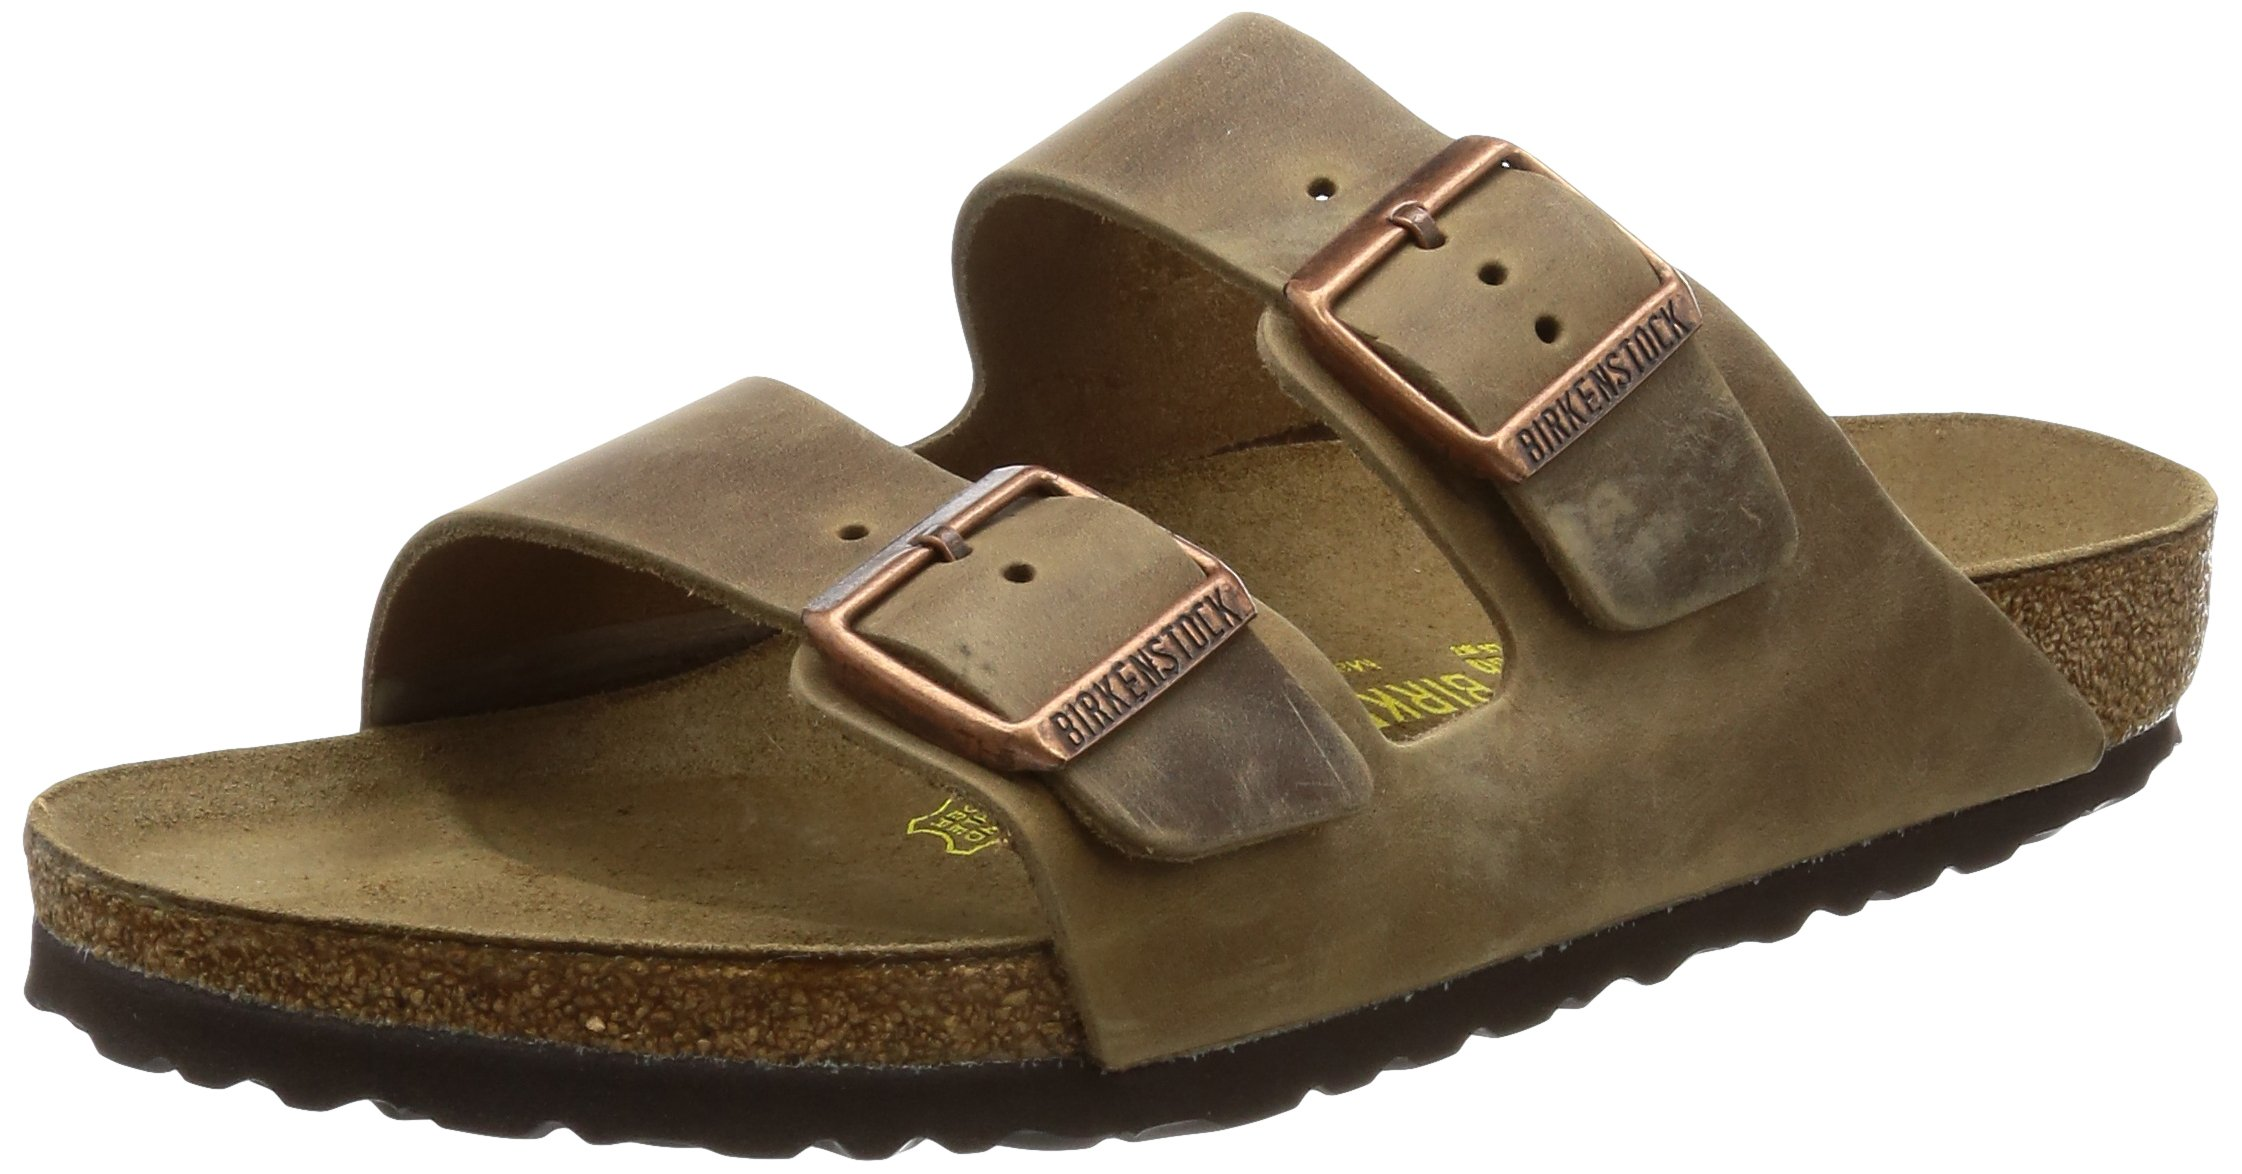 Birkenstock Unisex Arizona Tobacco Oiled Leather Sandals - 44 N EU/11-11.5 2A(N) US Men